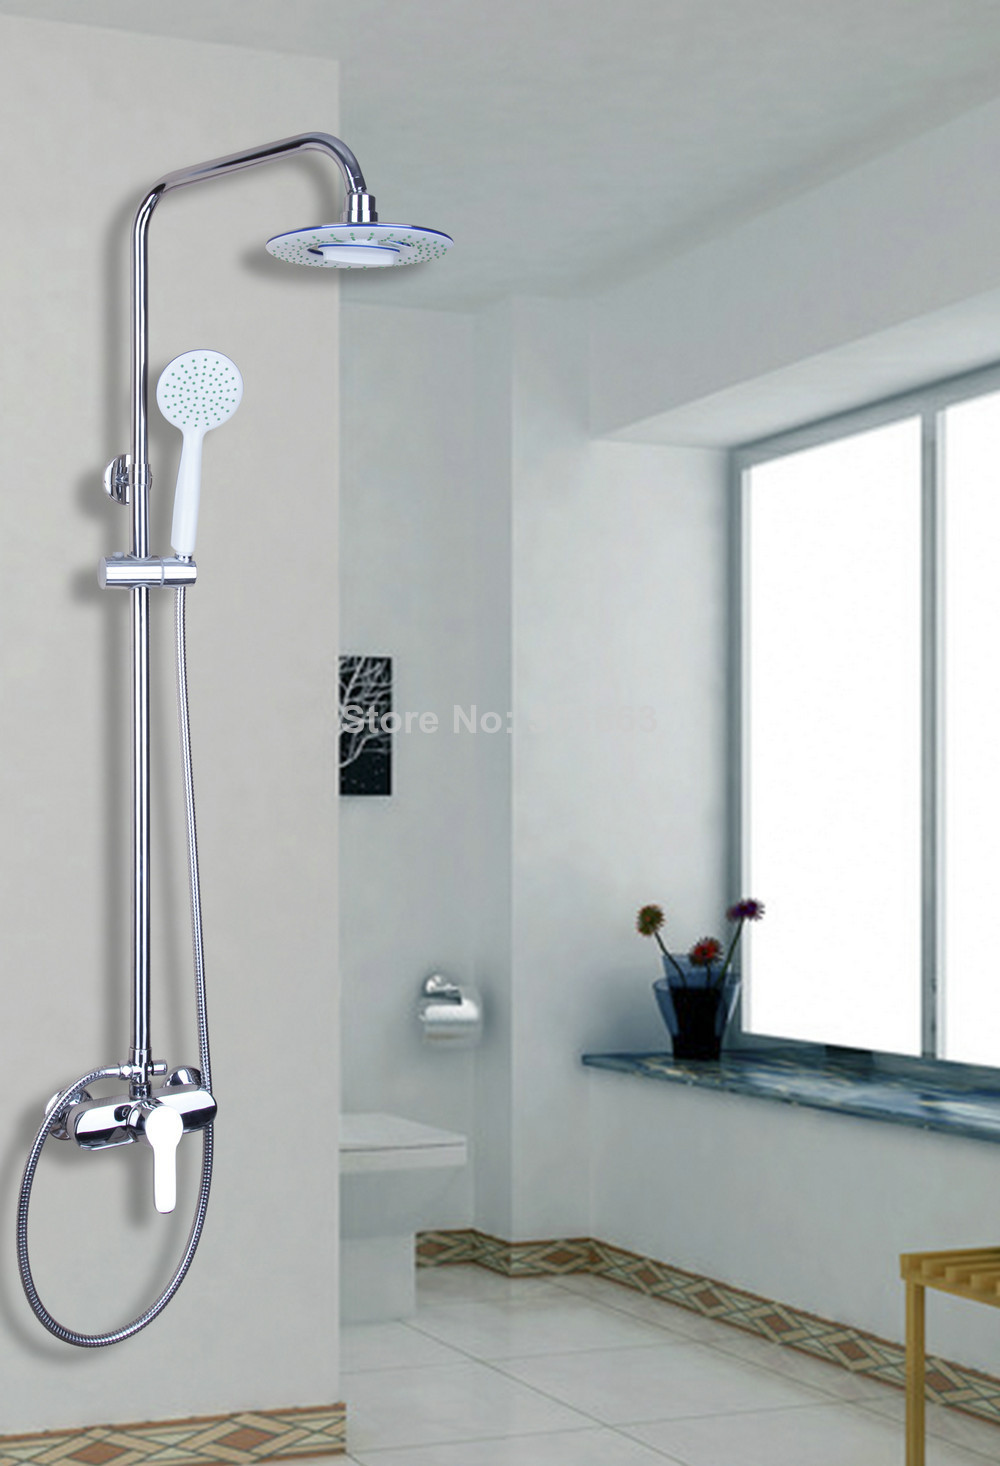 new bathroom rain shower system hand shower head tub spout setchina